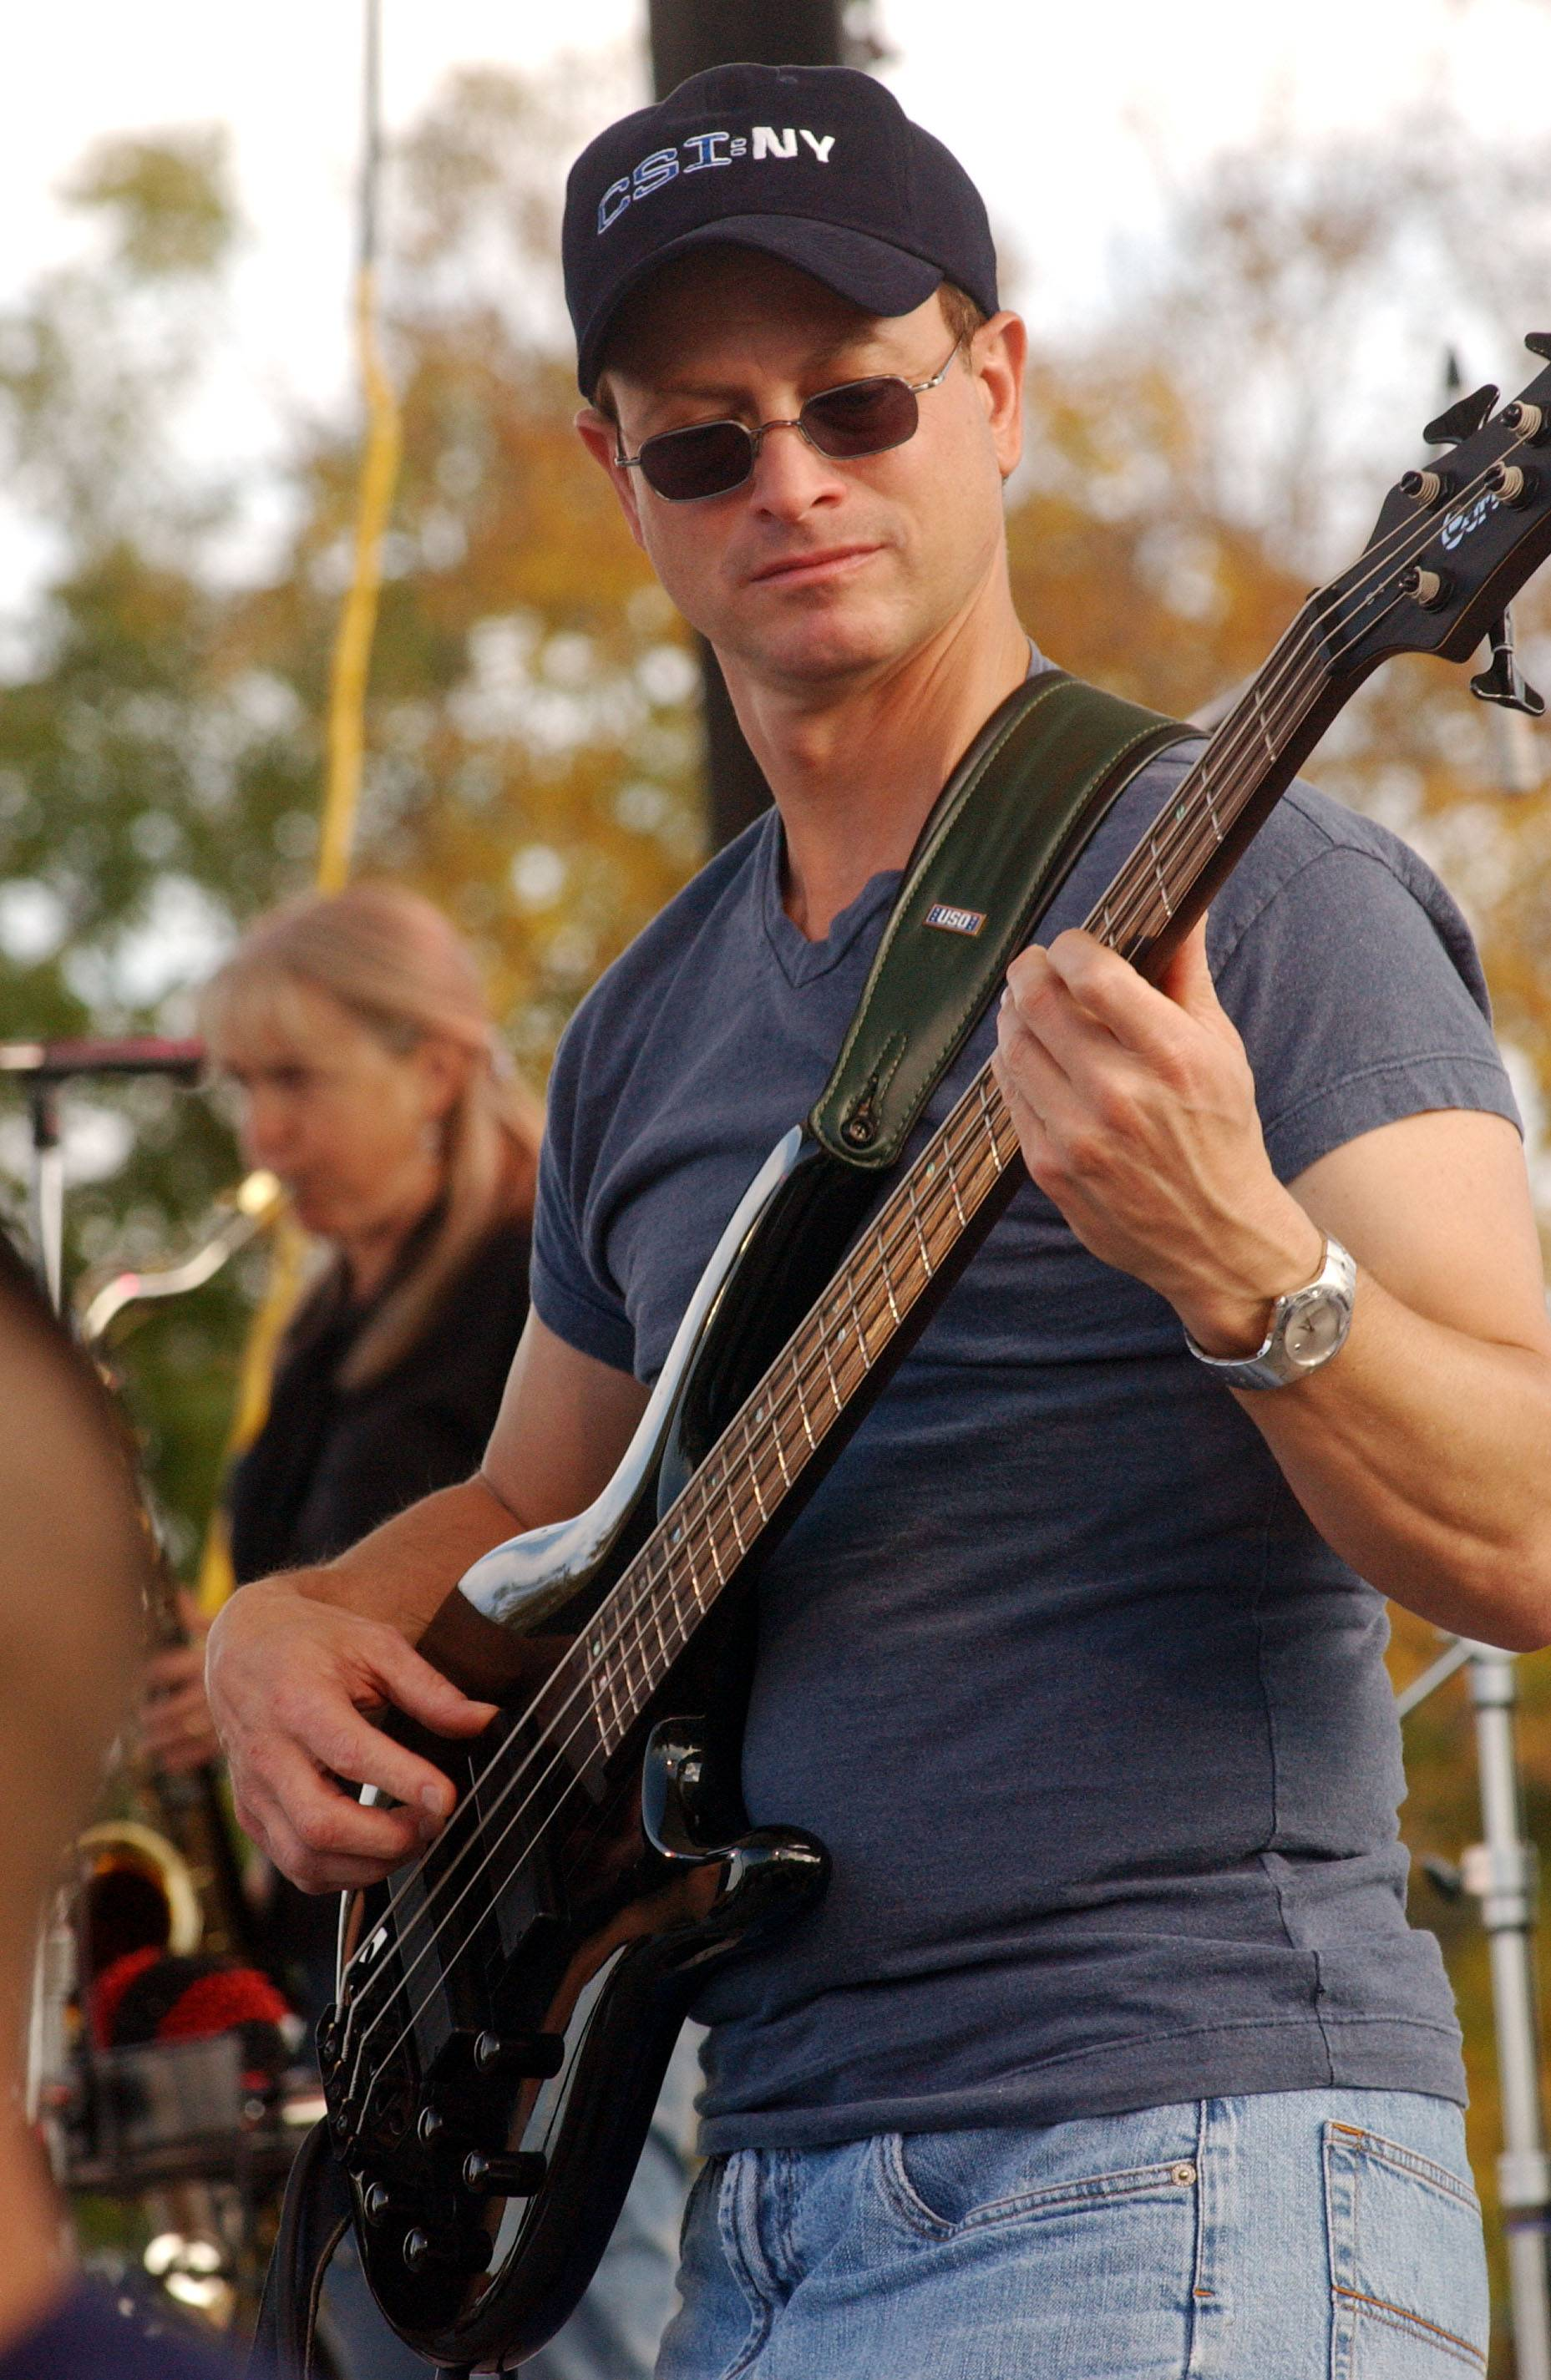 Gary Sinise, who attended Glenbard West High School as a freshman, says he was a musician long before he became an actor. His Lt. Dan Band will headline Saturday's Rockin' for the Troops concert at Cantigny Park.